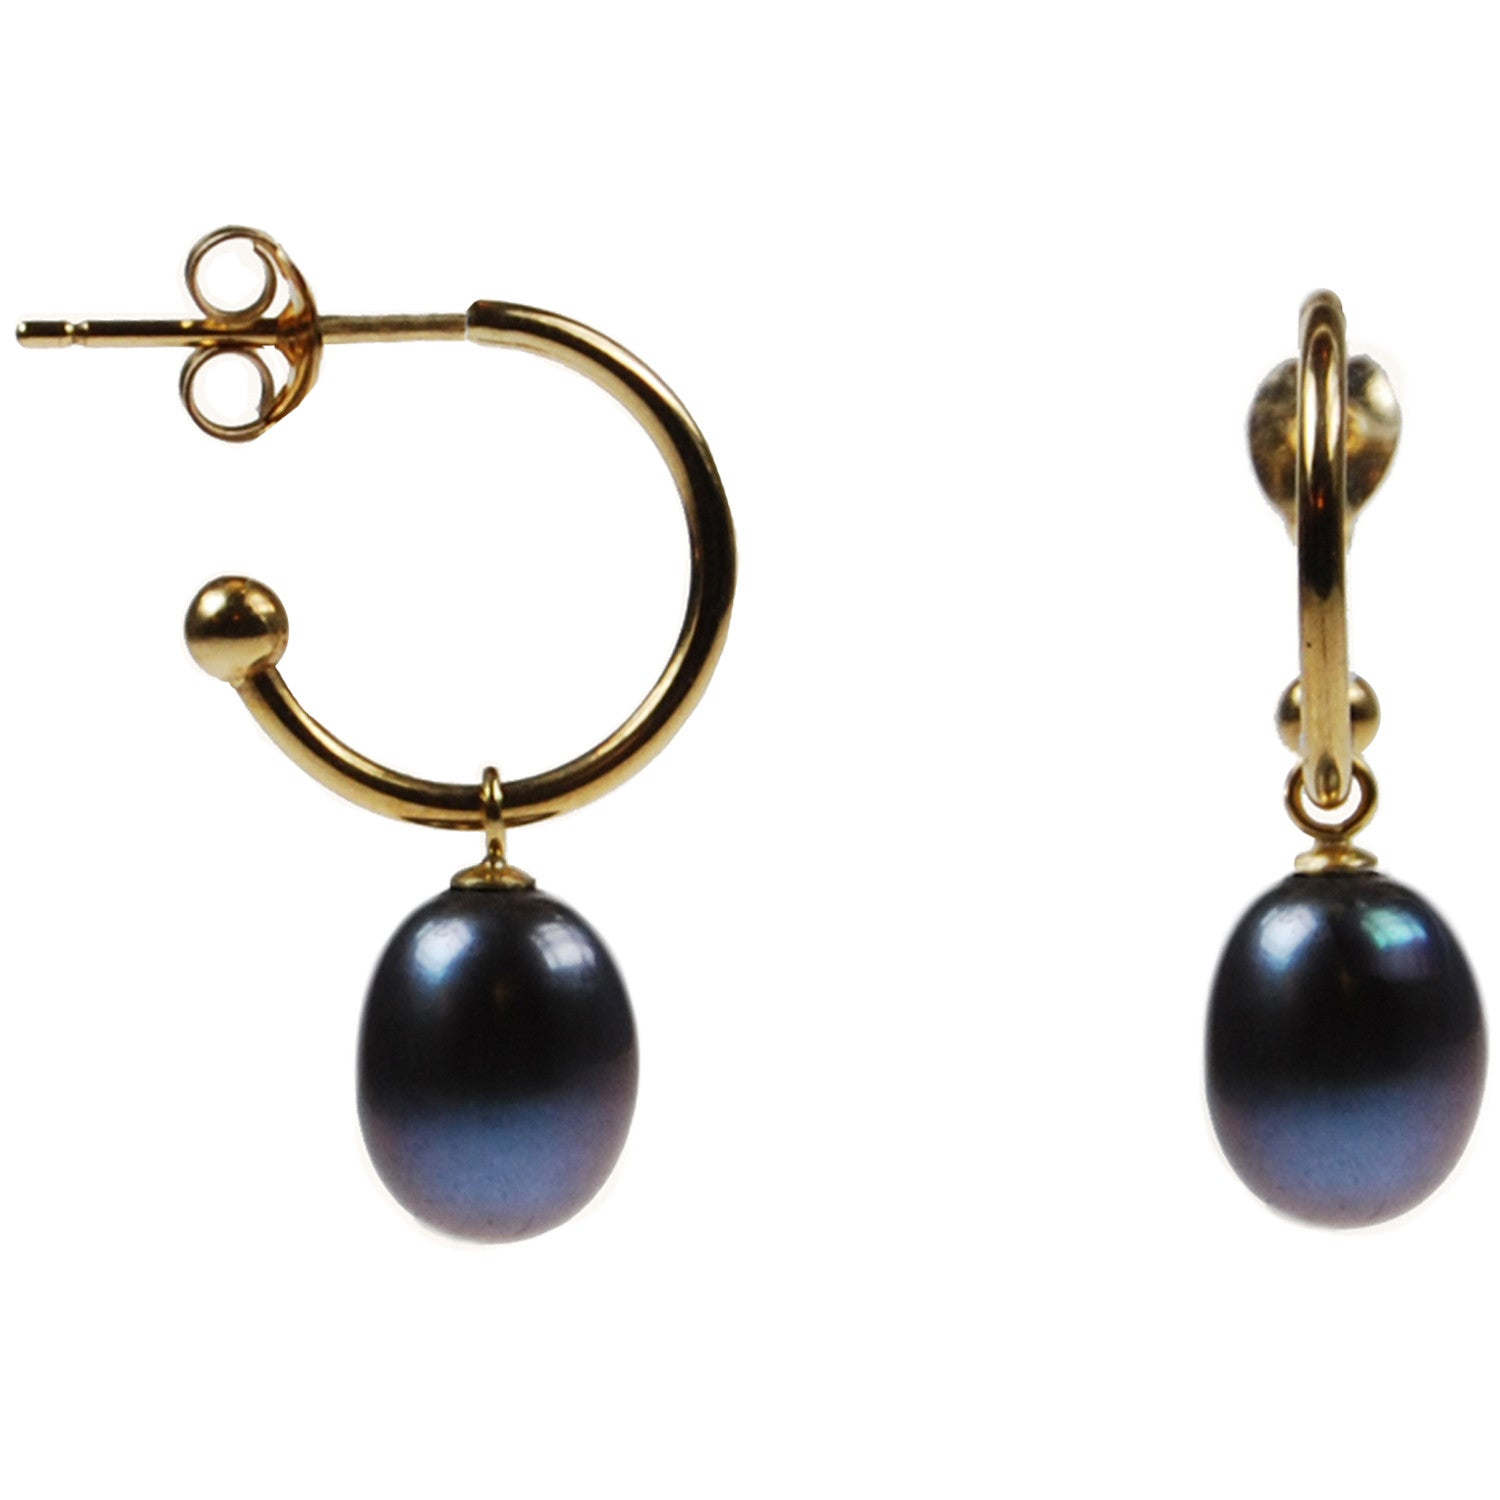 Freshwater Pearl Drop Earrings on 18ct Gold Open Hoops in Black